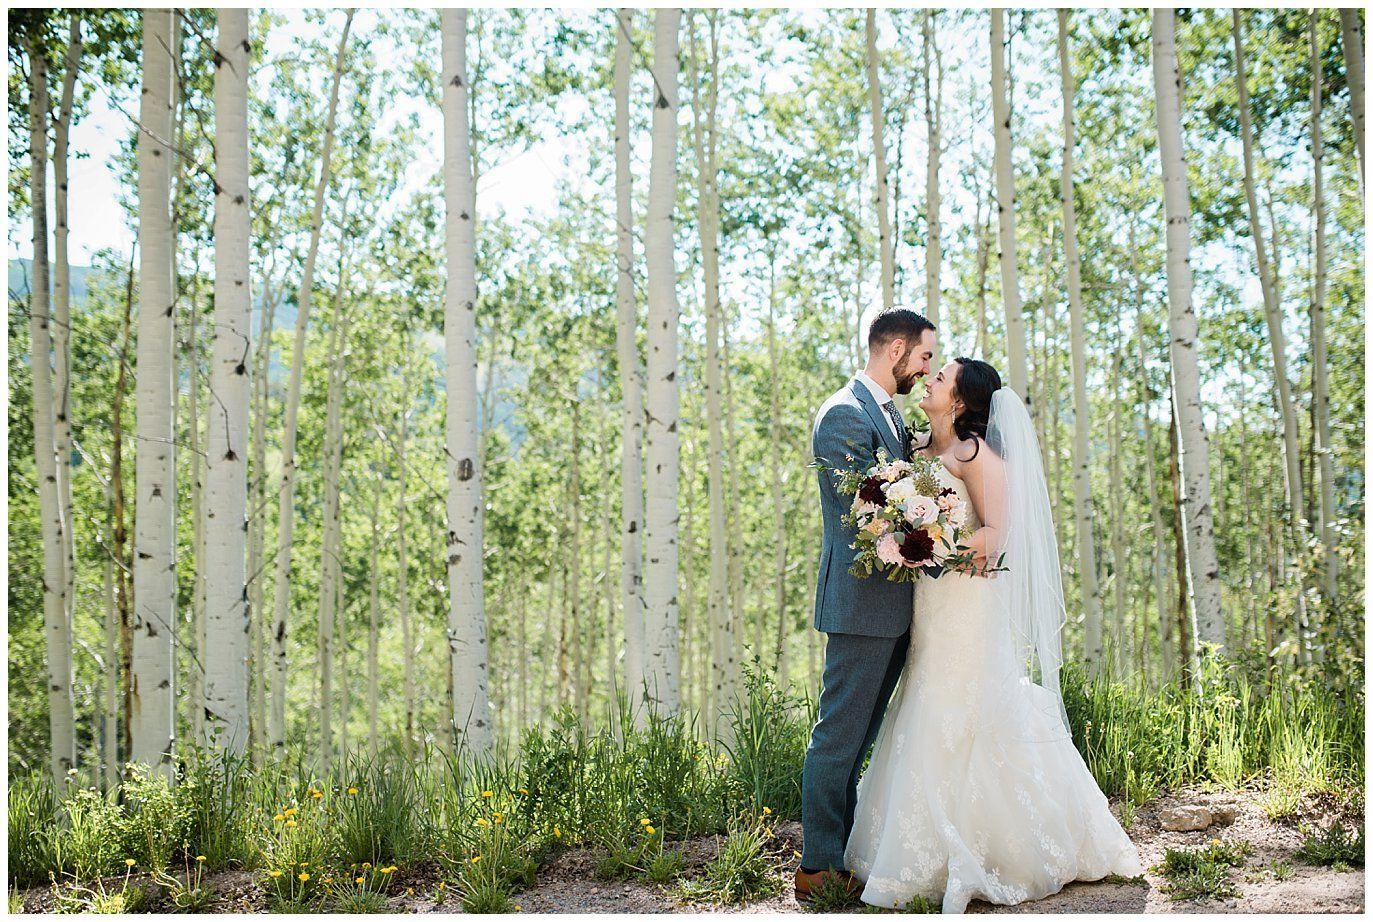 Allie S Cabin Beaver Creek Wedding In 2020 Beaver Creek Wedding